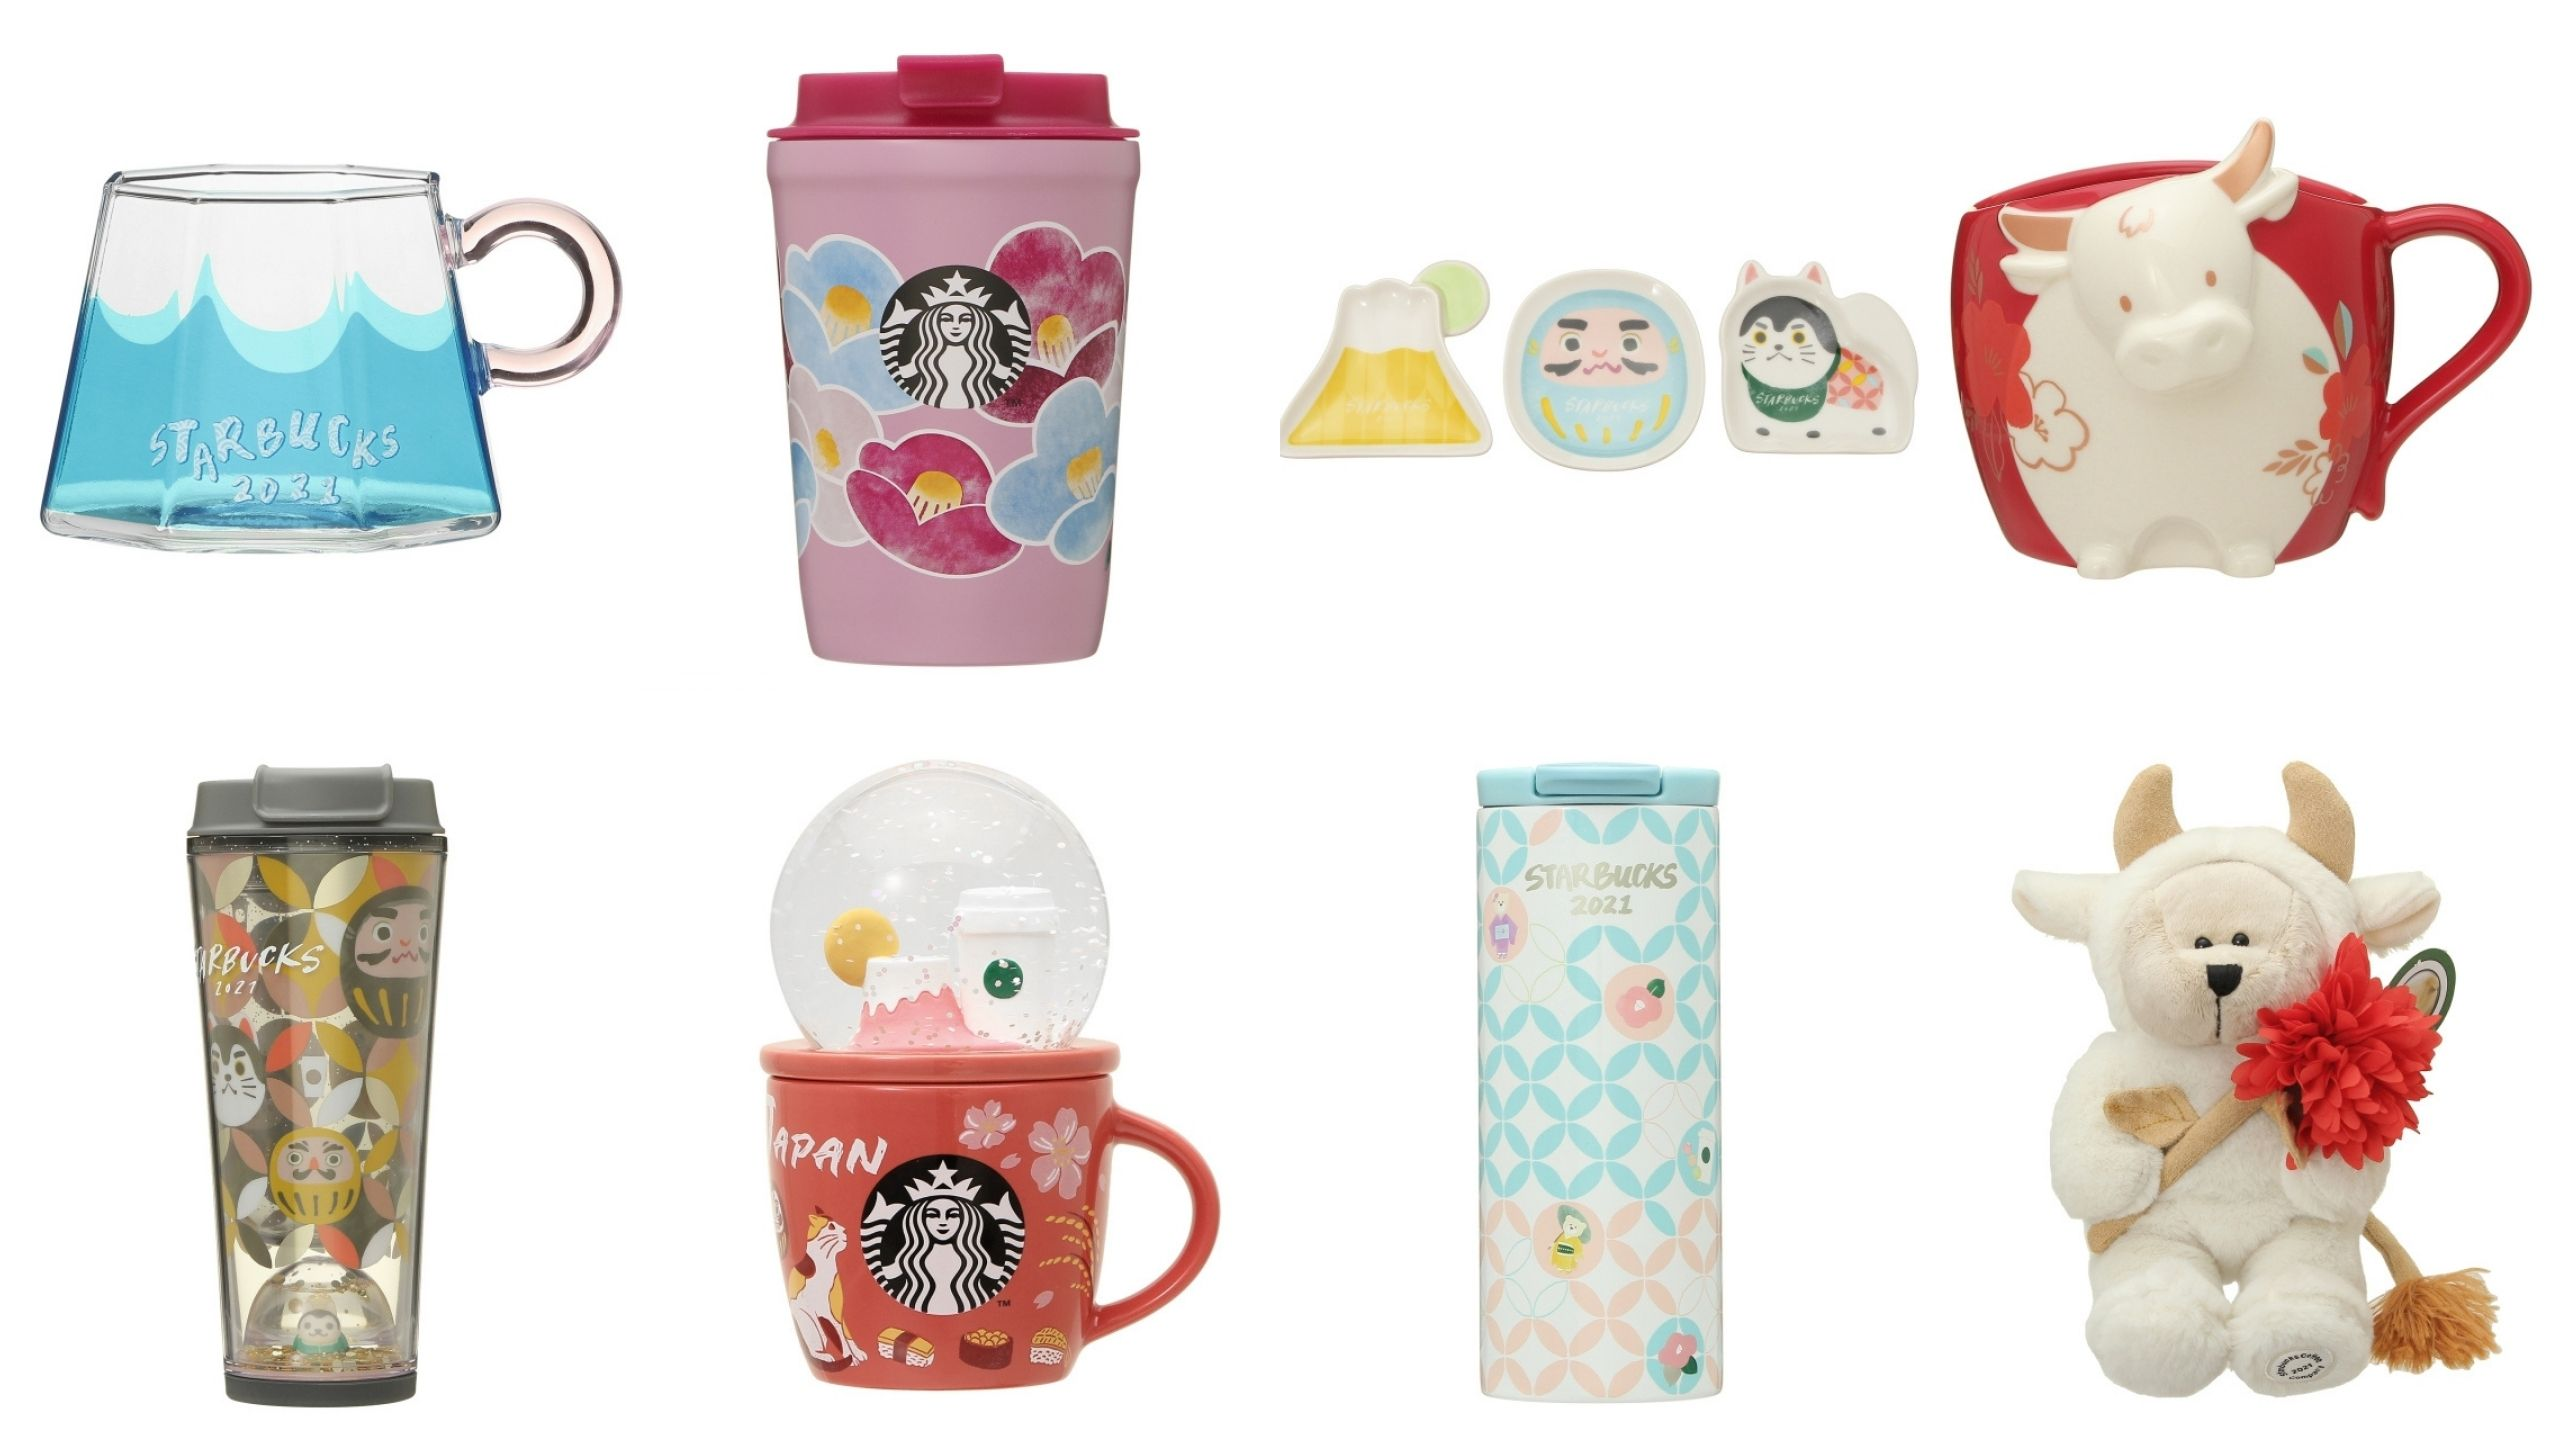 Starbucks Japan 2021 New Year Tumblers and Mugs